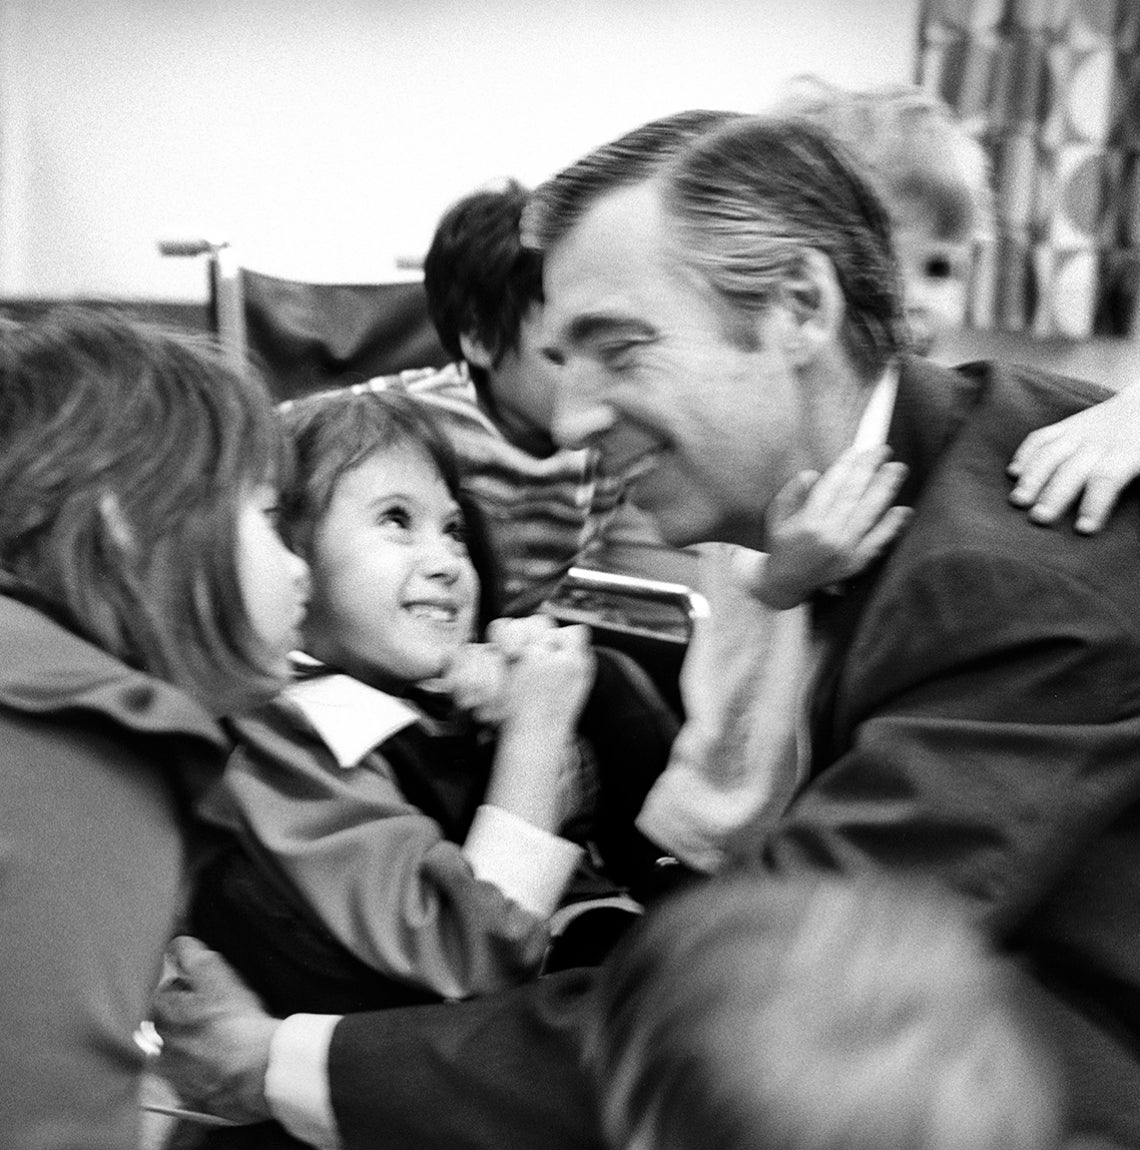 Fred Rogers with little kids, courtesy of Jim Judkis